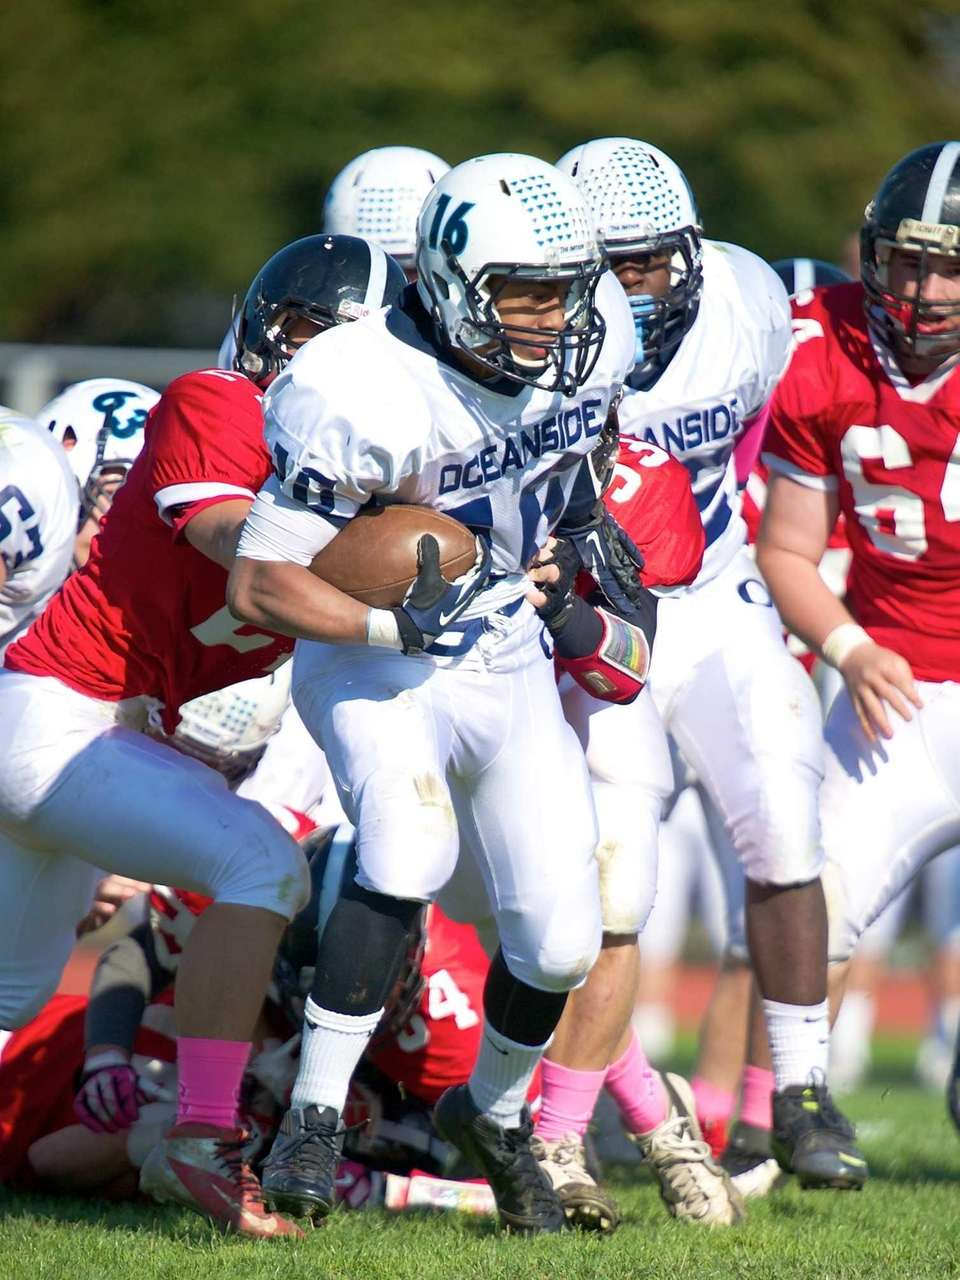 Oceanside running back Brandi Diaz fights for extra